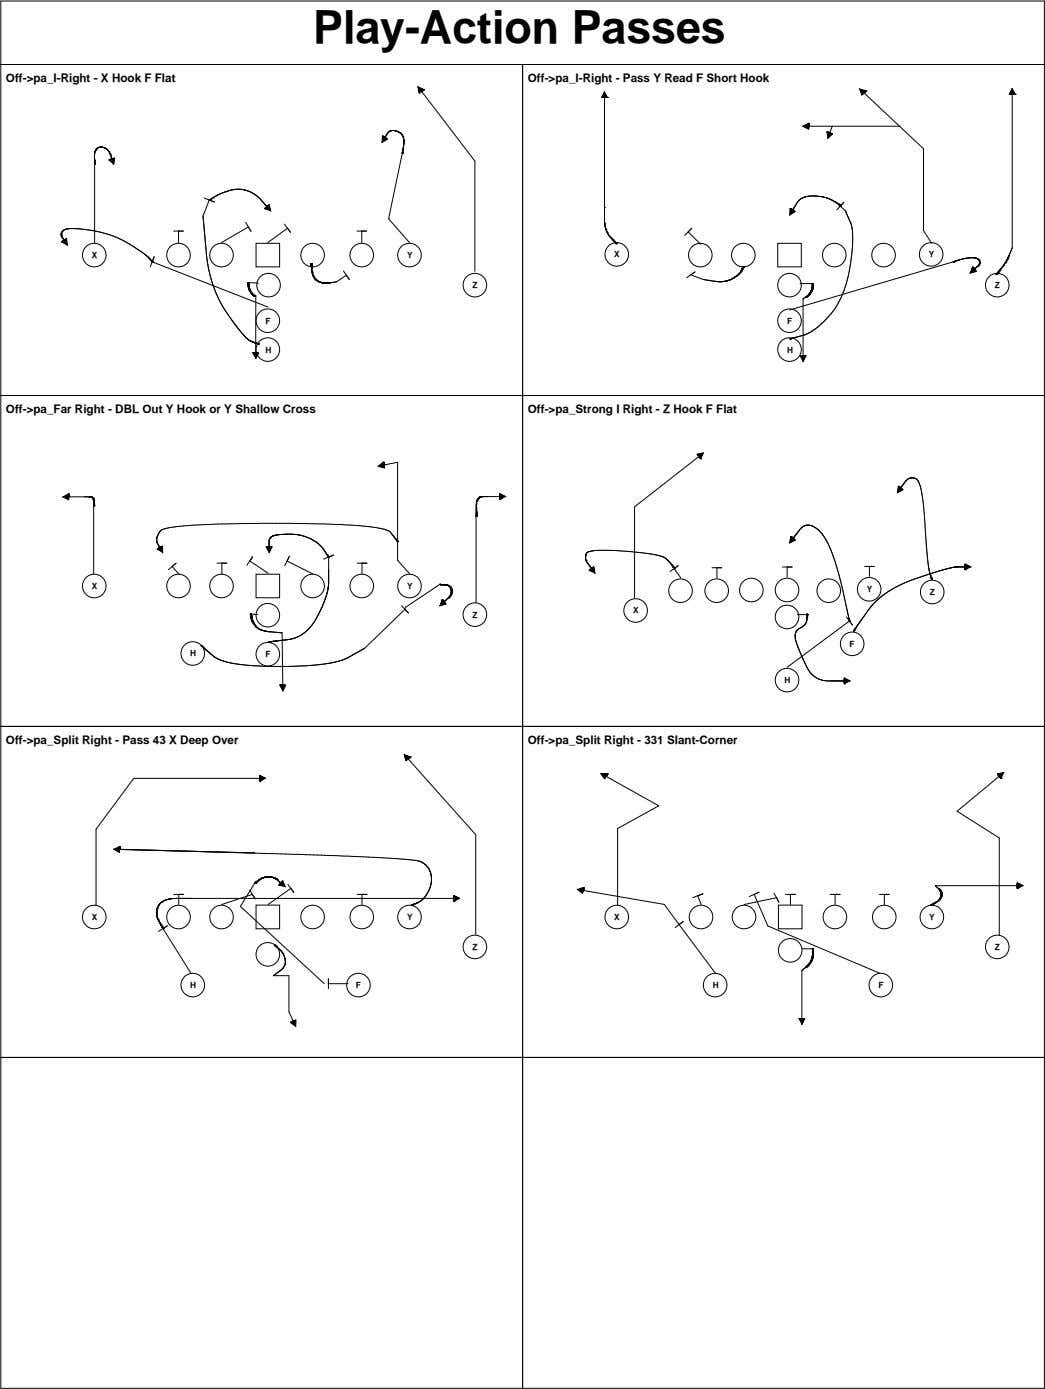 Play-Action Passes Off->pa_I-Right - X Hook F Flat Off->pa_I-Right - Pass Y Read F Short